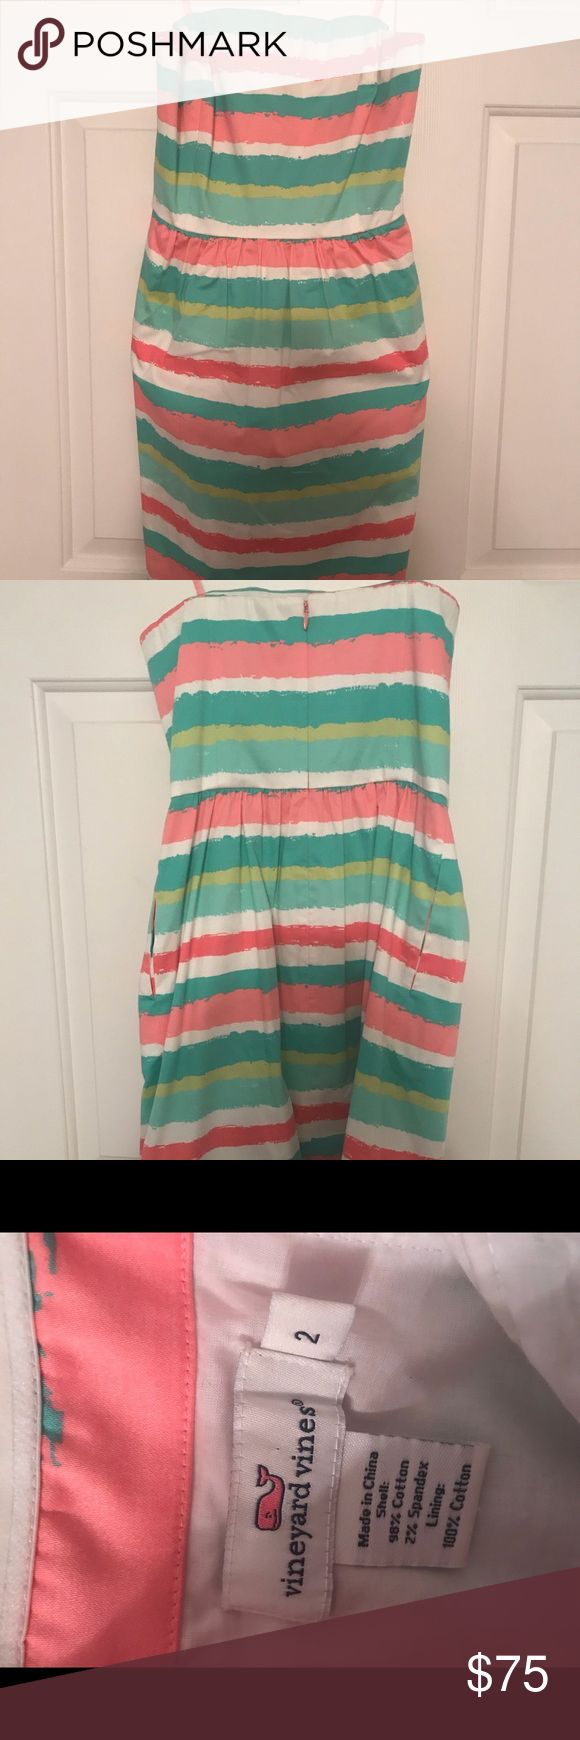 Vineyard Vines Strapless Dress Vineyard Vines Strapless Dress. This dress is super cute on! Bought to wear to a wedding, only worn one time! Hits above knee. Vineyard Vines Dresses Mini